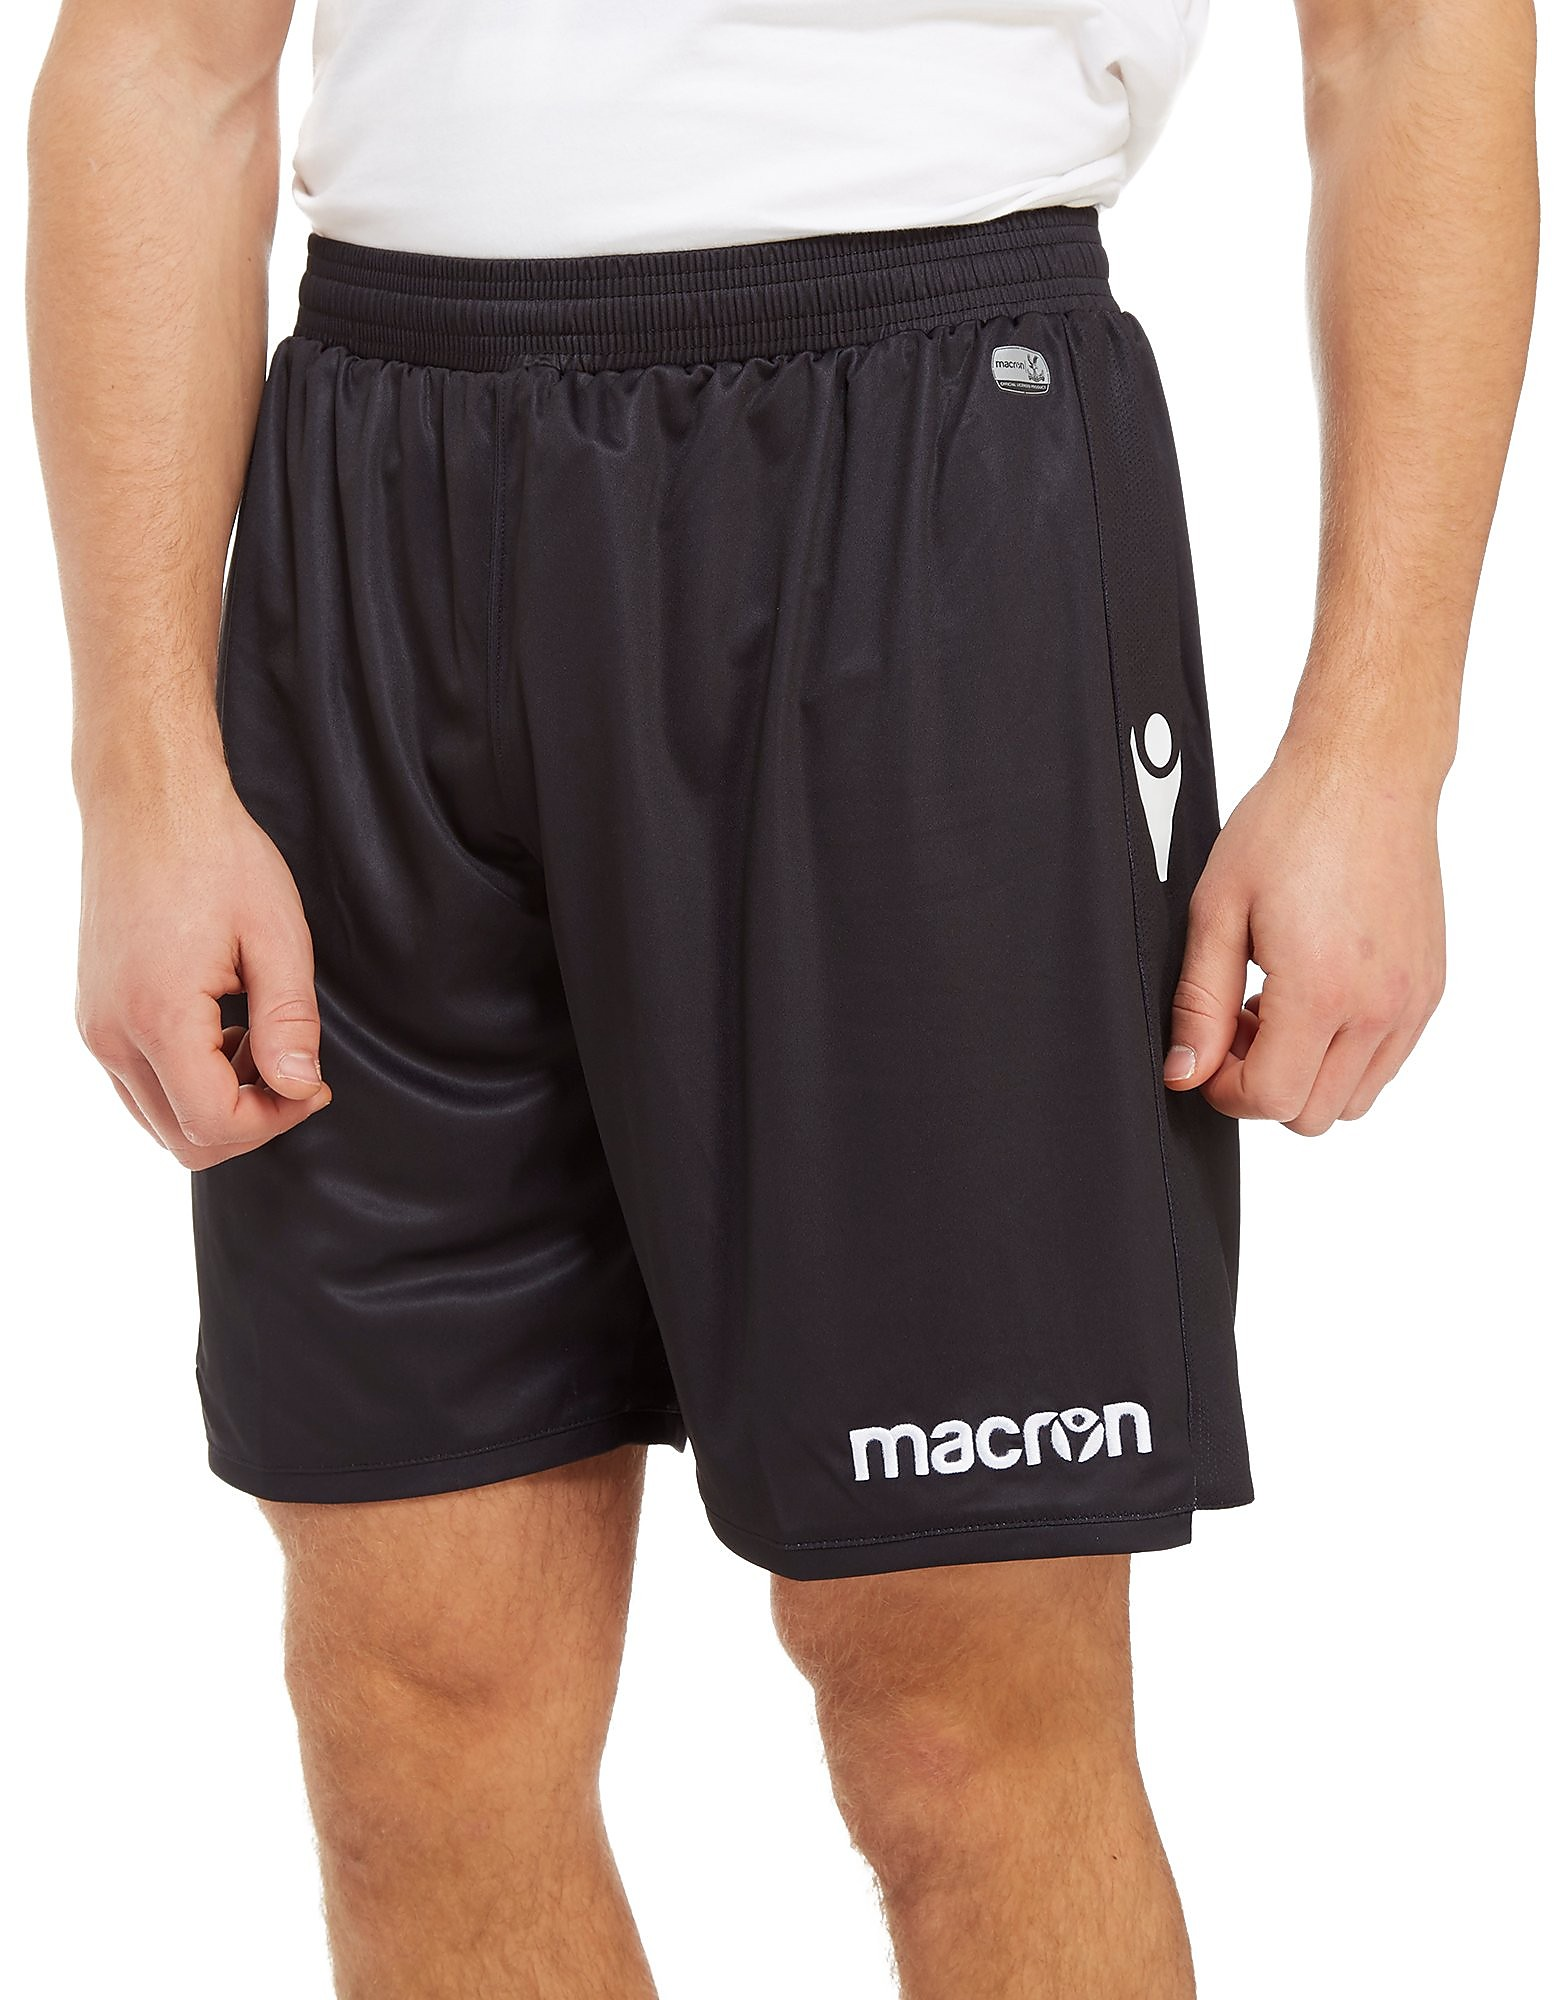 Macron Crystal Palace FC 2017/18 Away Shorts